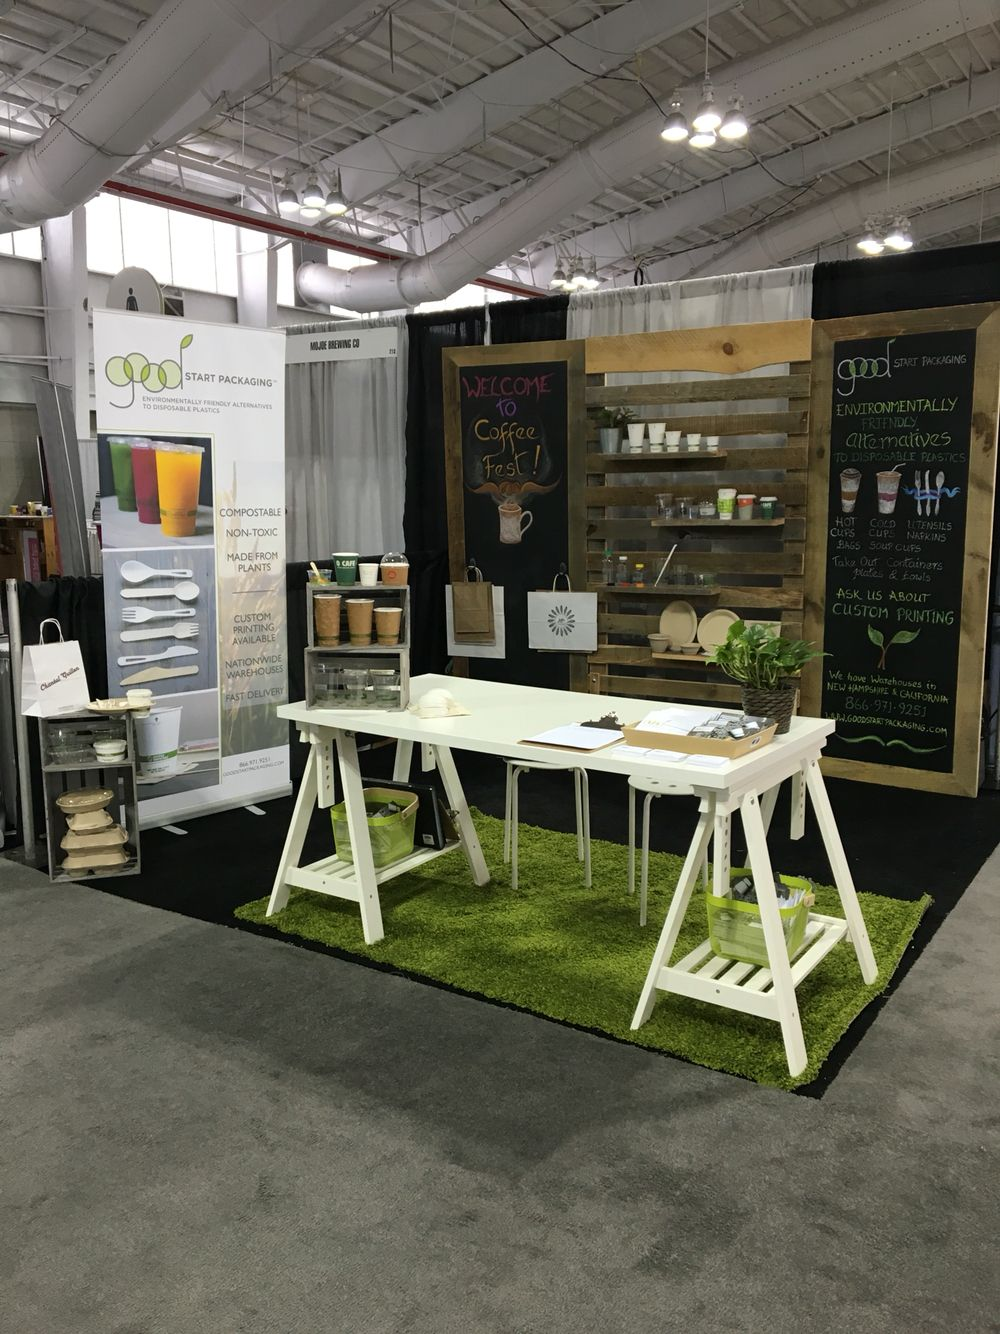 Exhibition Booth Outdoor : Tradeshow booth convention coffee fest ideas in